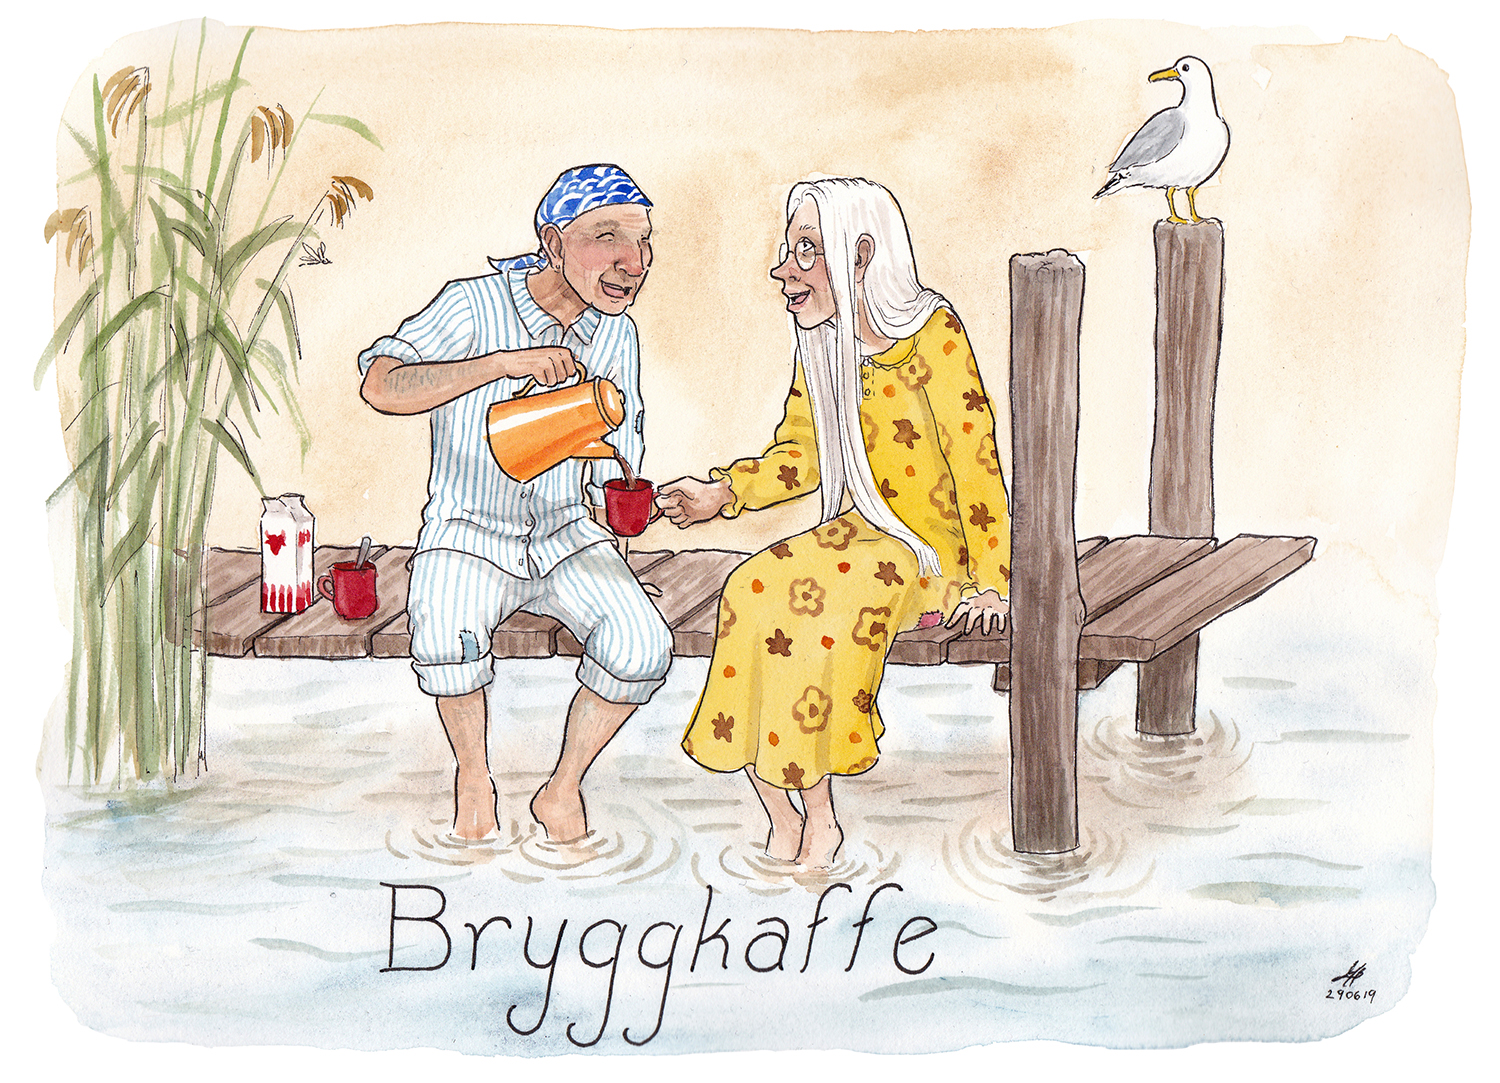 bryggkaffe illustration ordvits